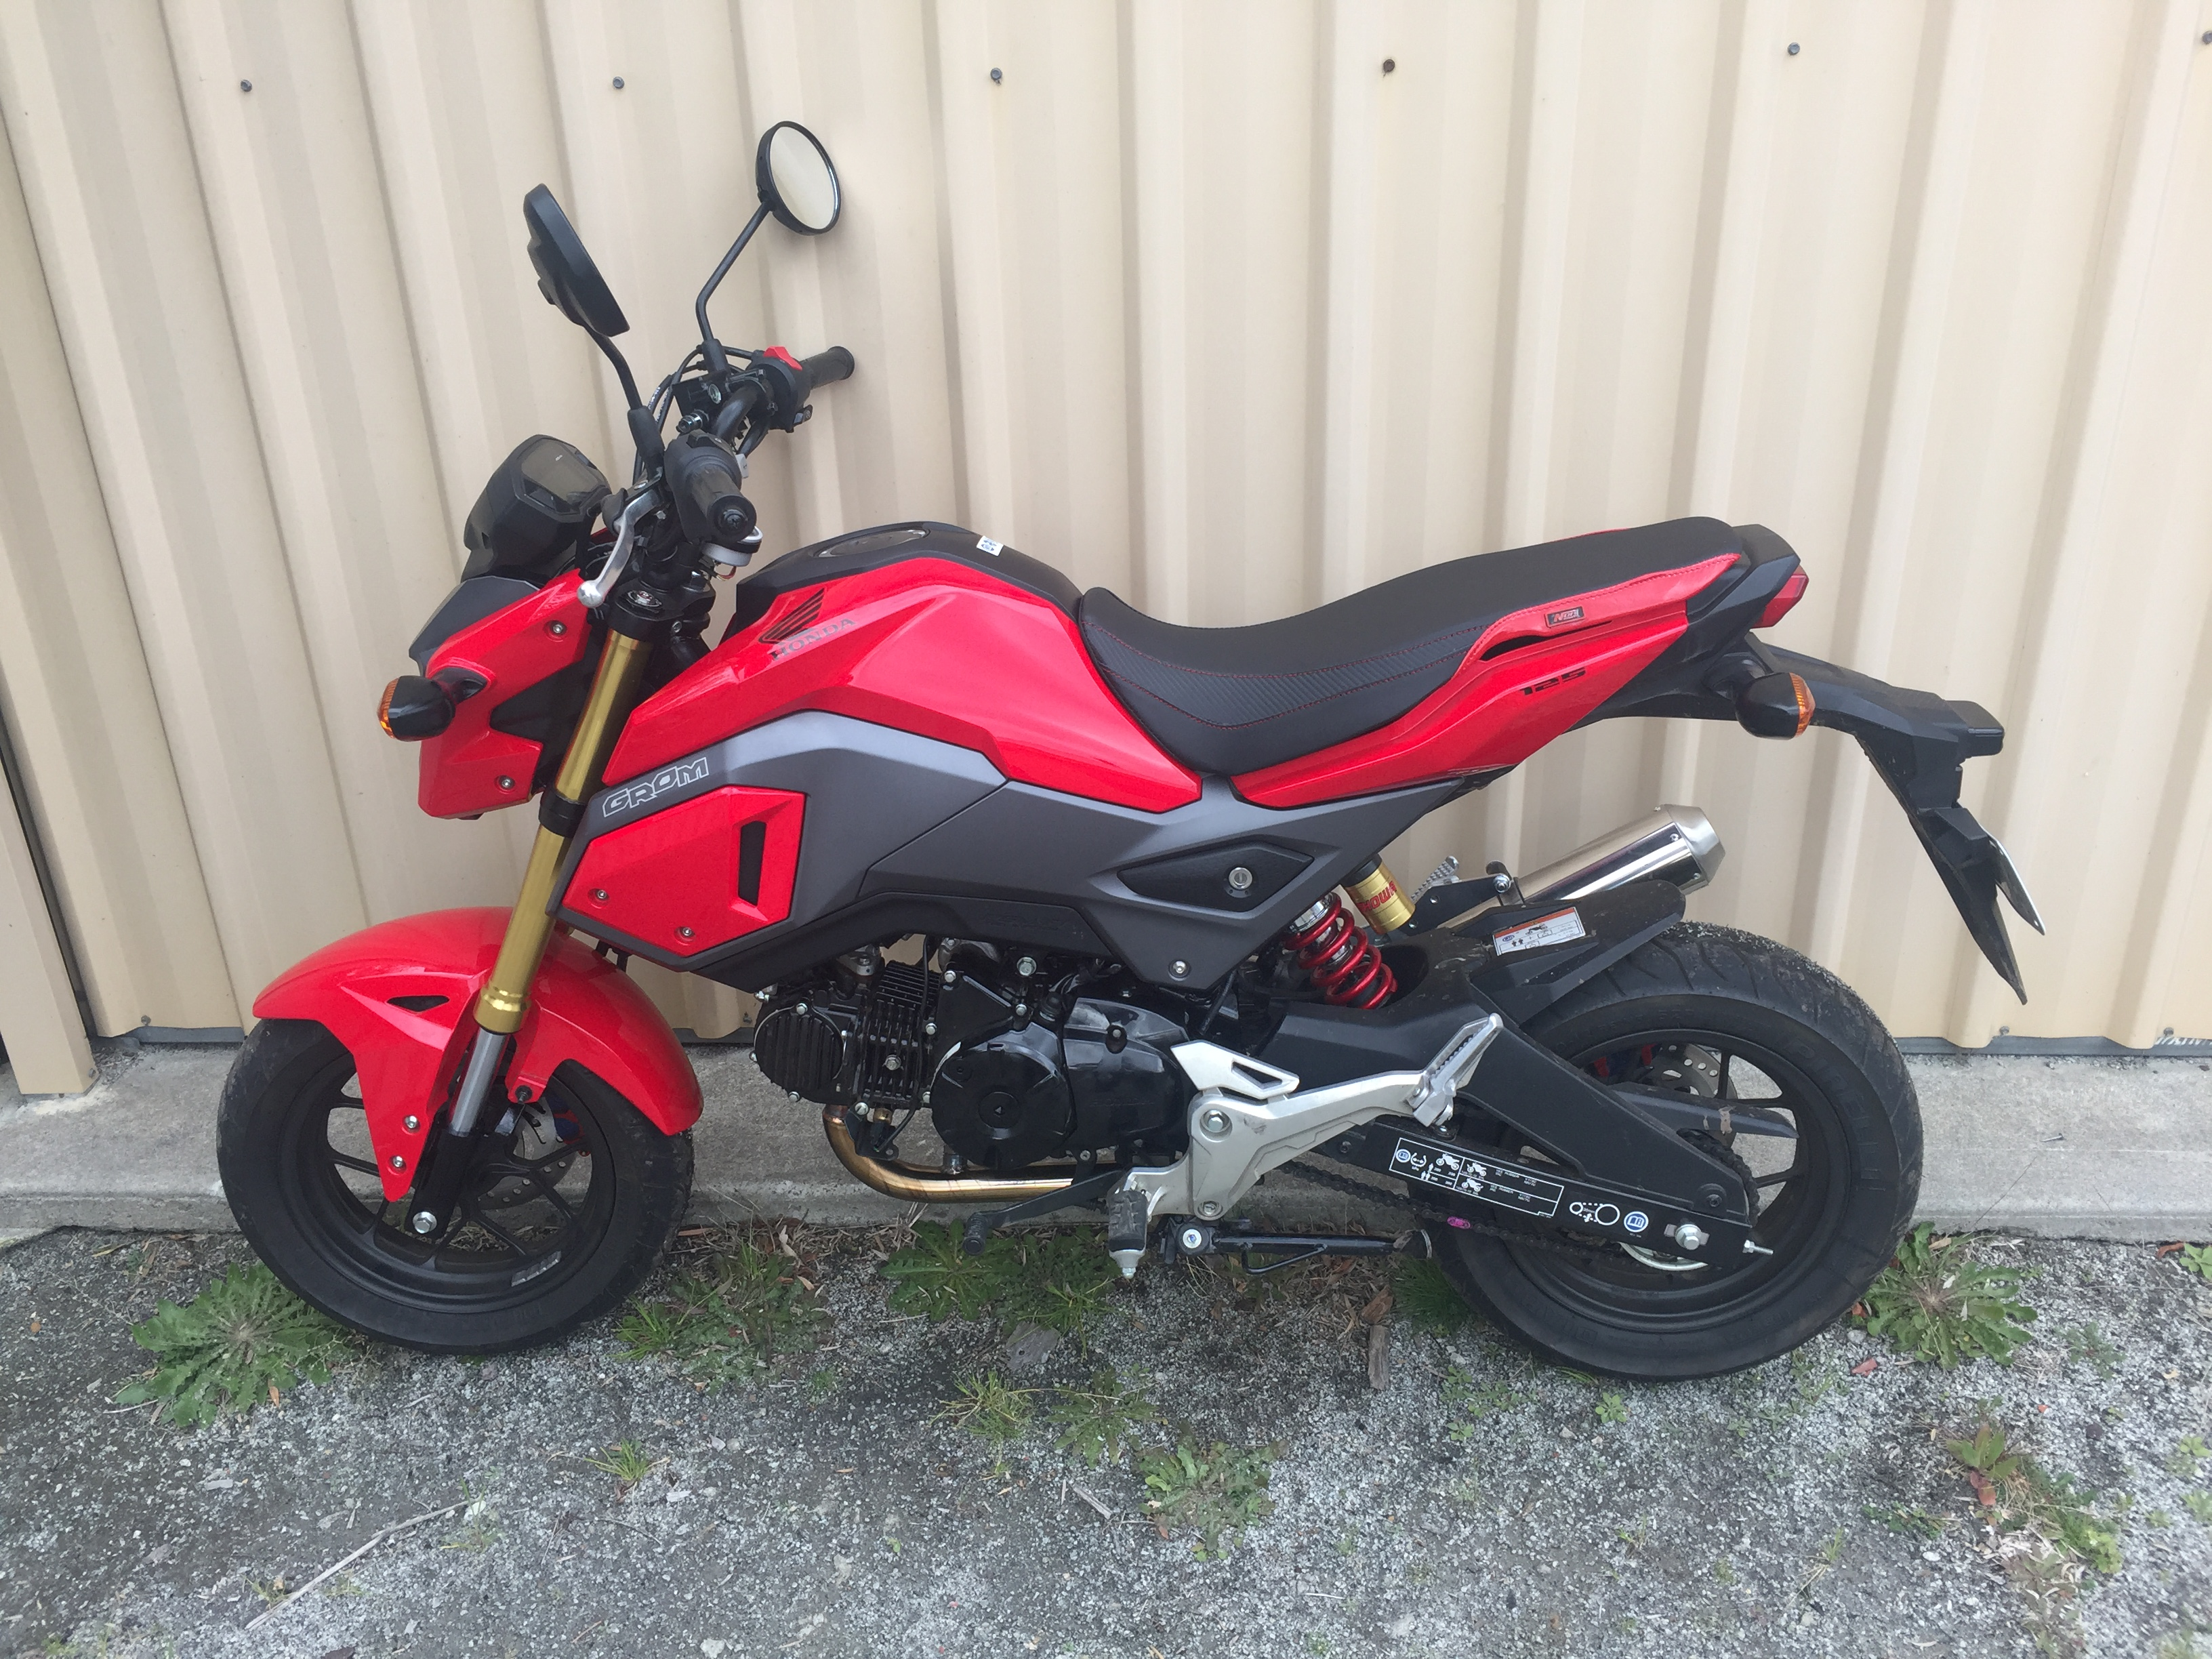 Grom SF aftermarket seats-image.jpeg